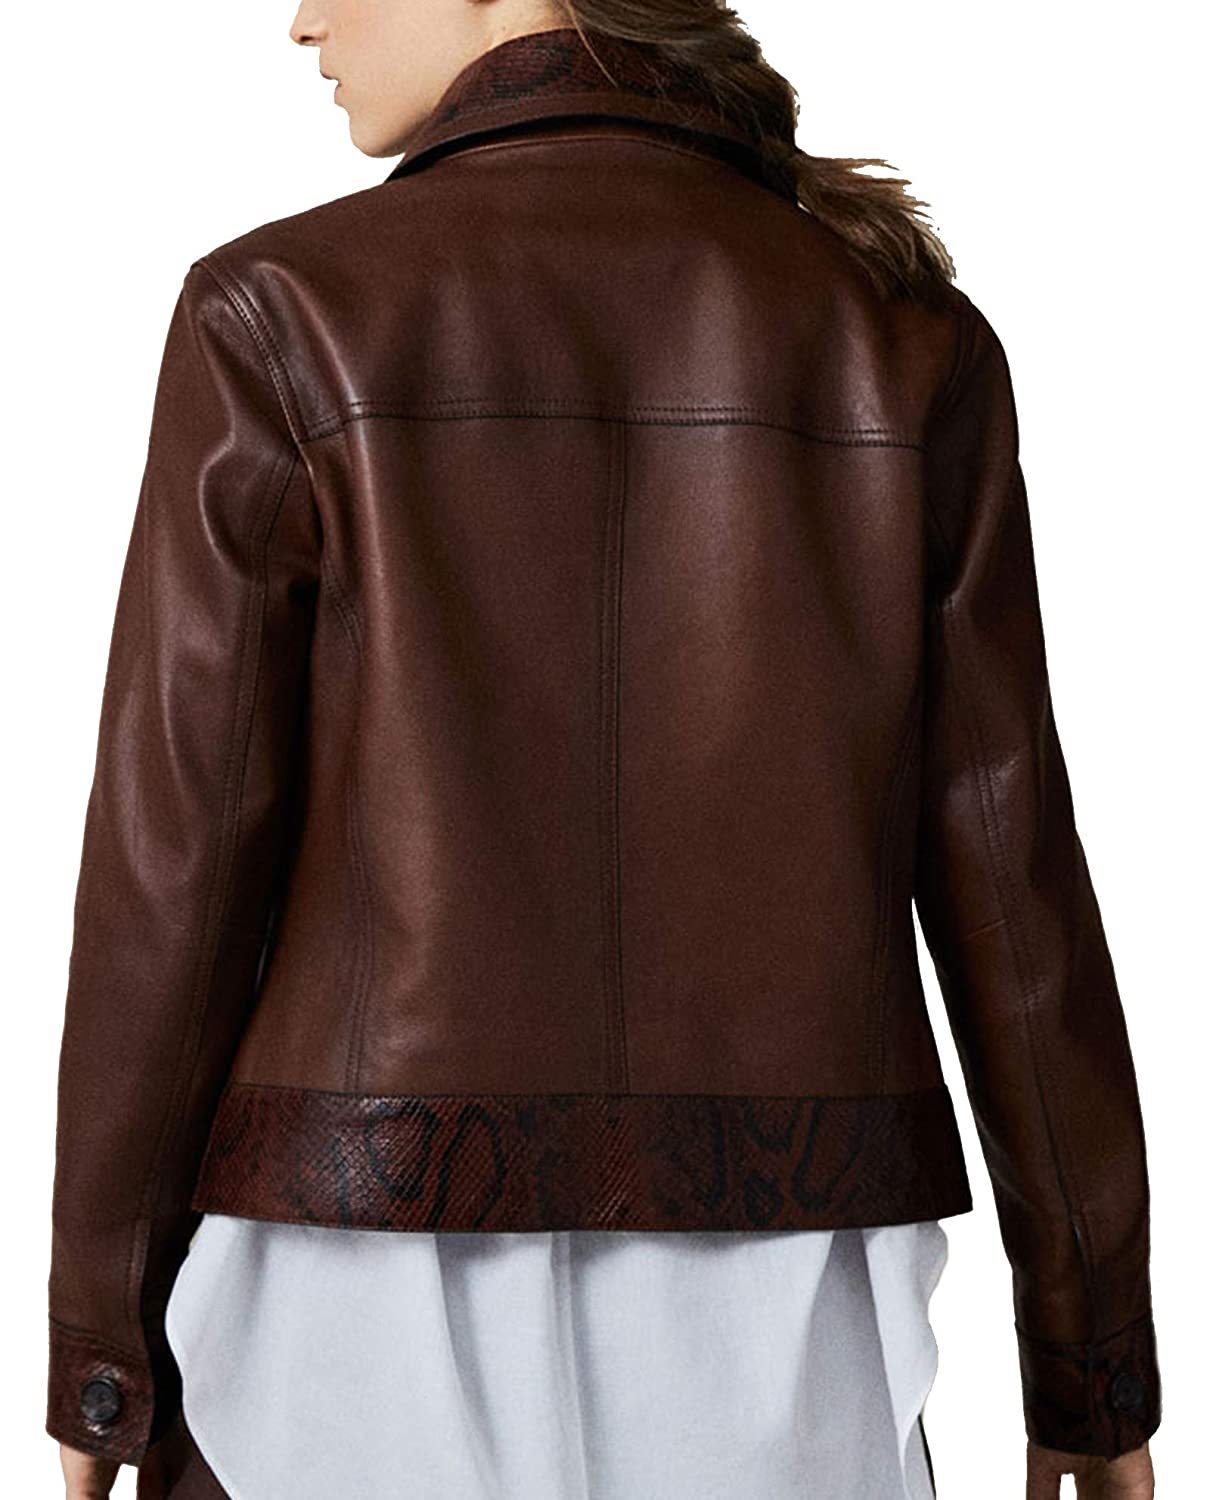 9963087c4 MASSIMO DUTTI Women's Nappa Leather Jacket with Snakeskin Detail ...